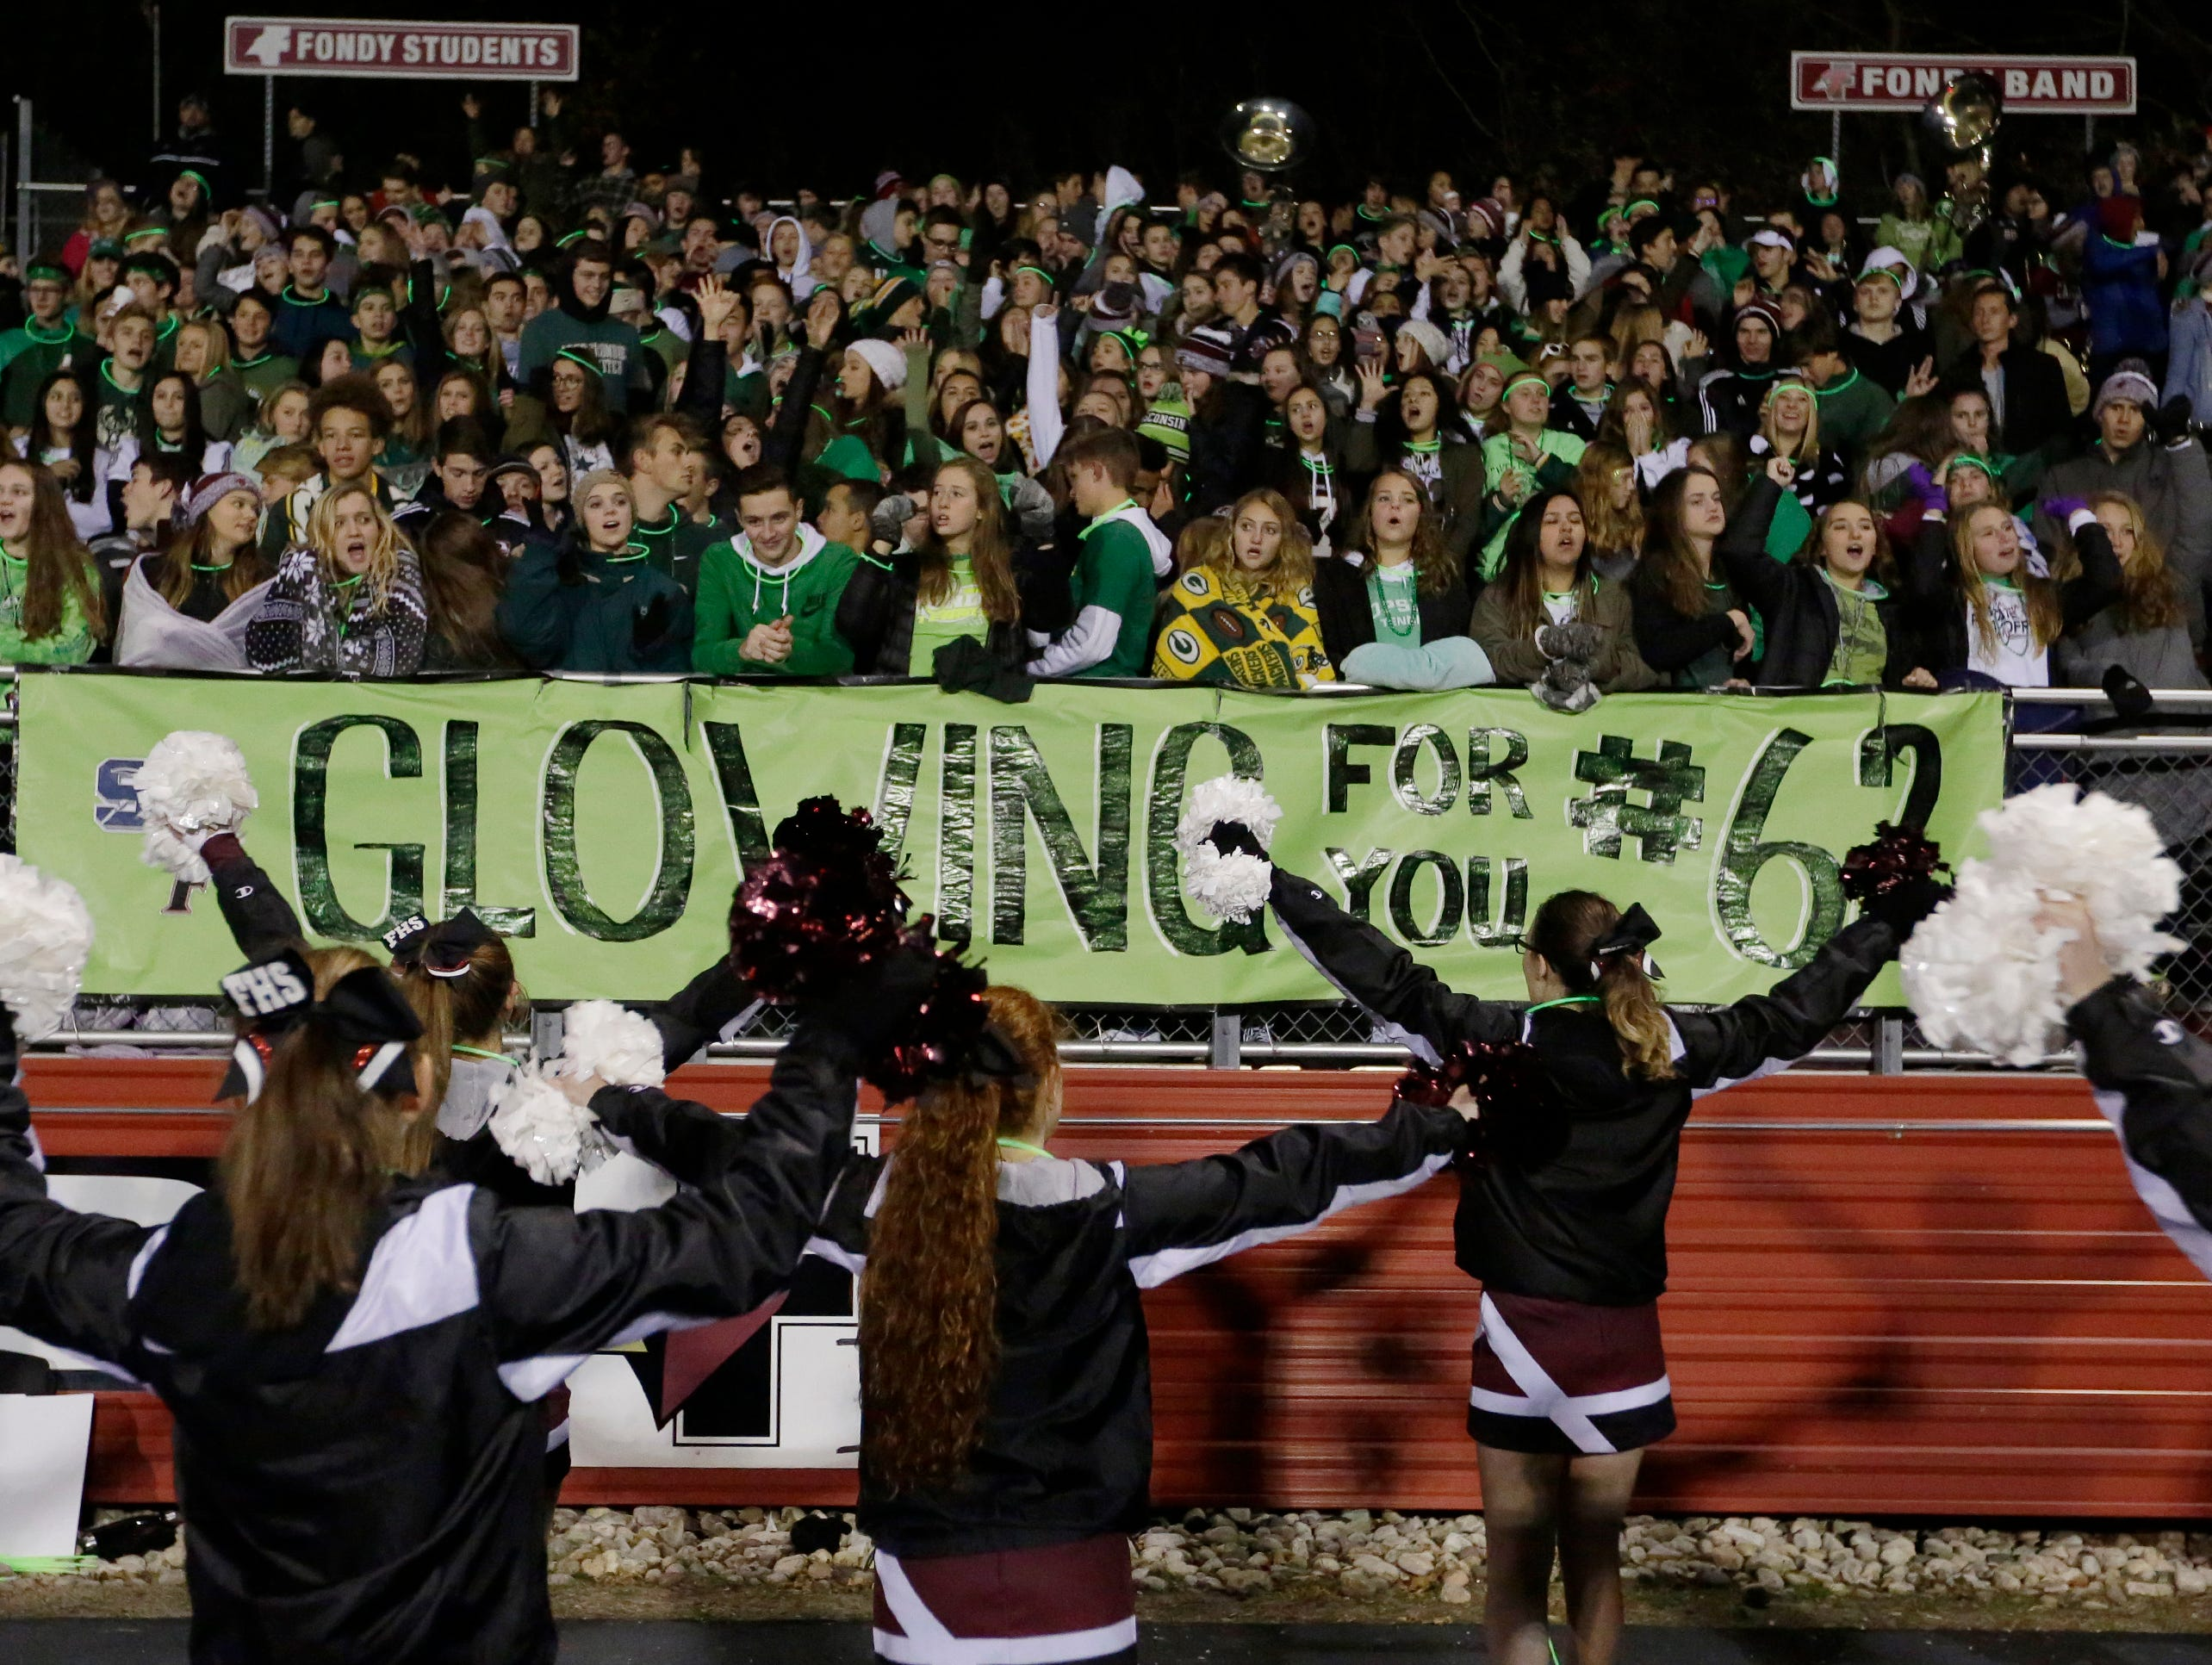 The theme for the game was Glowing for #62 the St. Mary's Springs junior Trent Schueffner #62 who died a hunting accident a week ago.  $4000 was raised for the family.  Fond du Lac Cardinals played Arrowhead Warhawks in WIAA football playoff sectionals, Friday, Oct. 26, 2018, at Fruth Field in Fond du Lac.  Fond du Lac won 28 - 22.Joe Sienkiewicz/USA Today NETWORK-Wisconsin